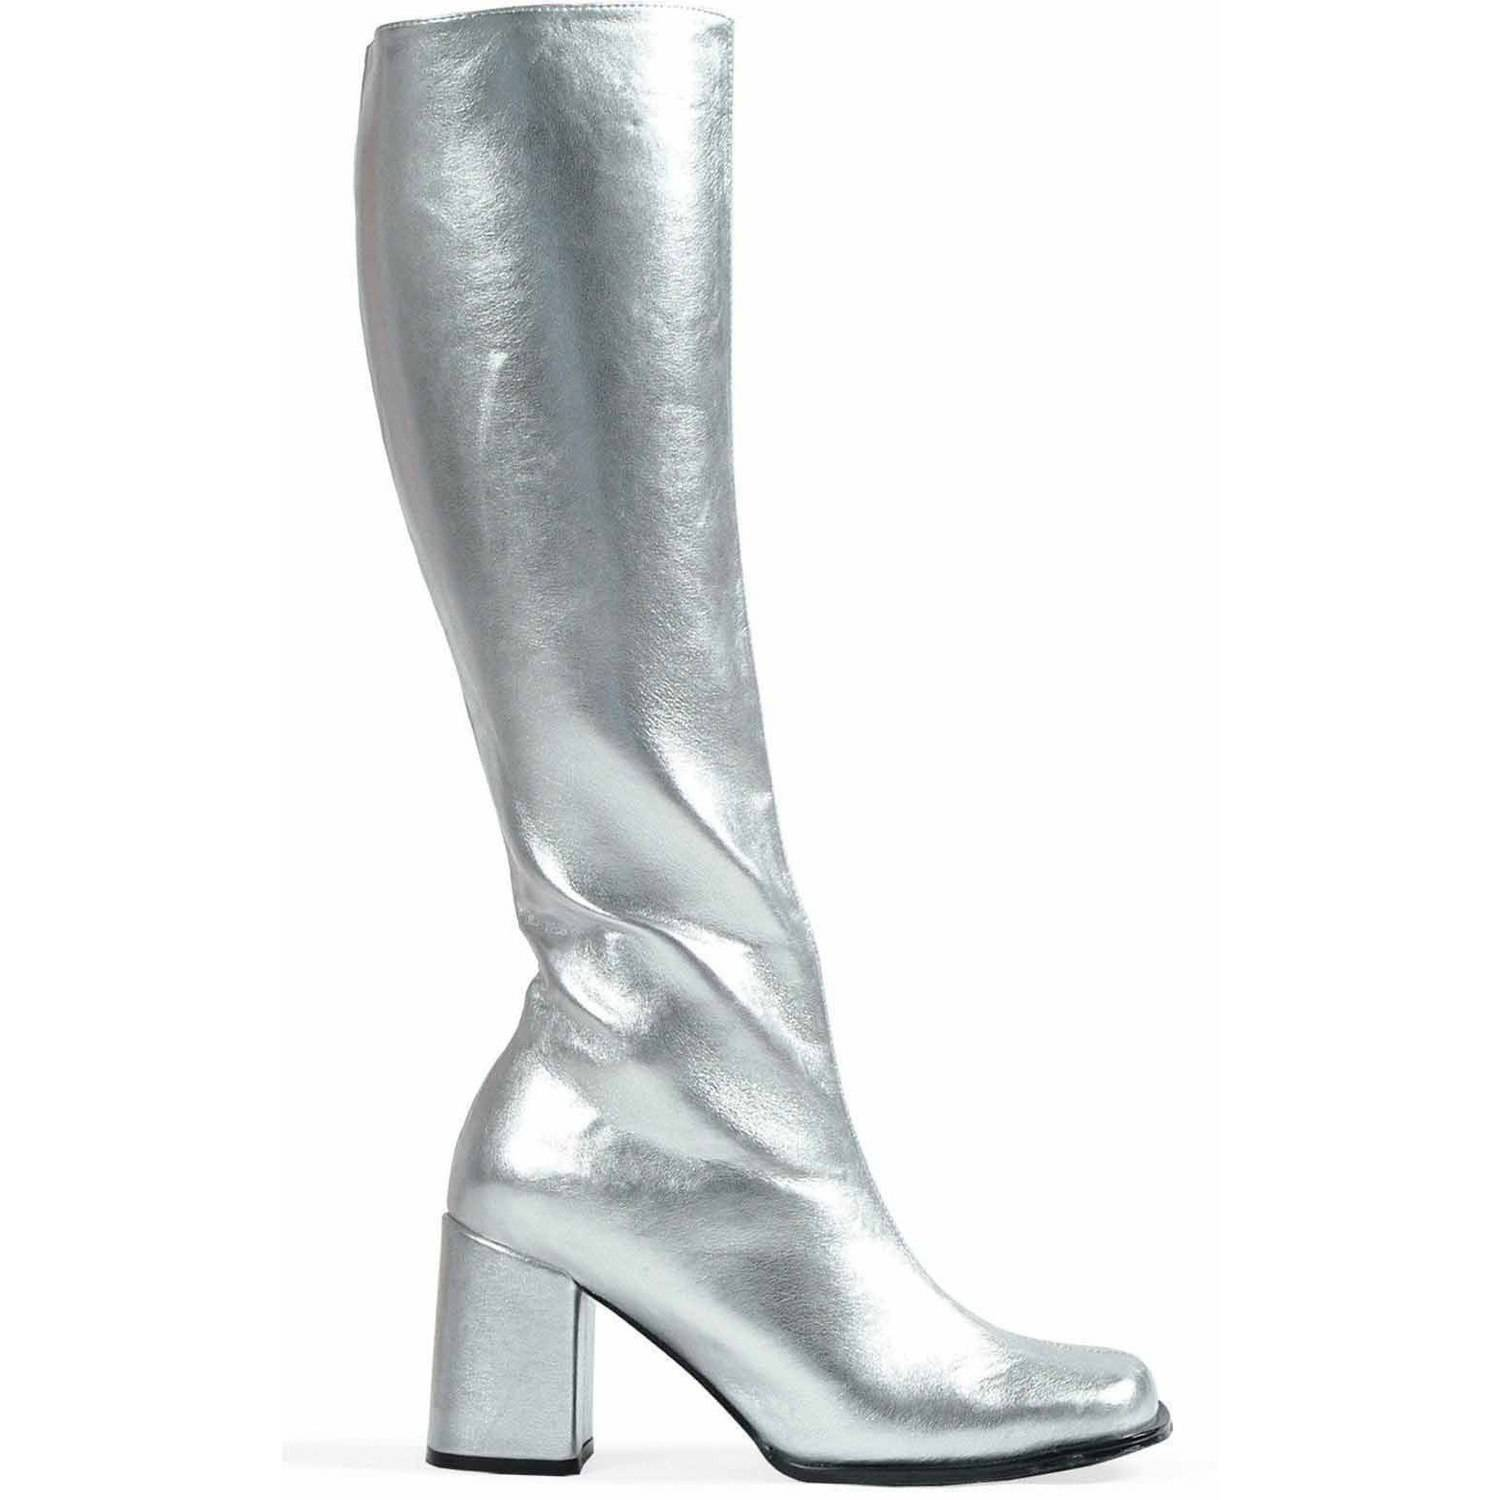 Womens GoGo Boot Covers 60s 70 Black White Silver Gold Shoe Cover Tops Knee High